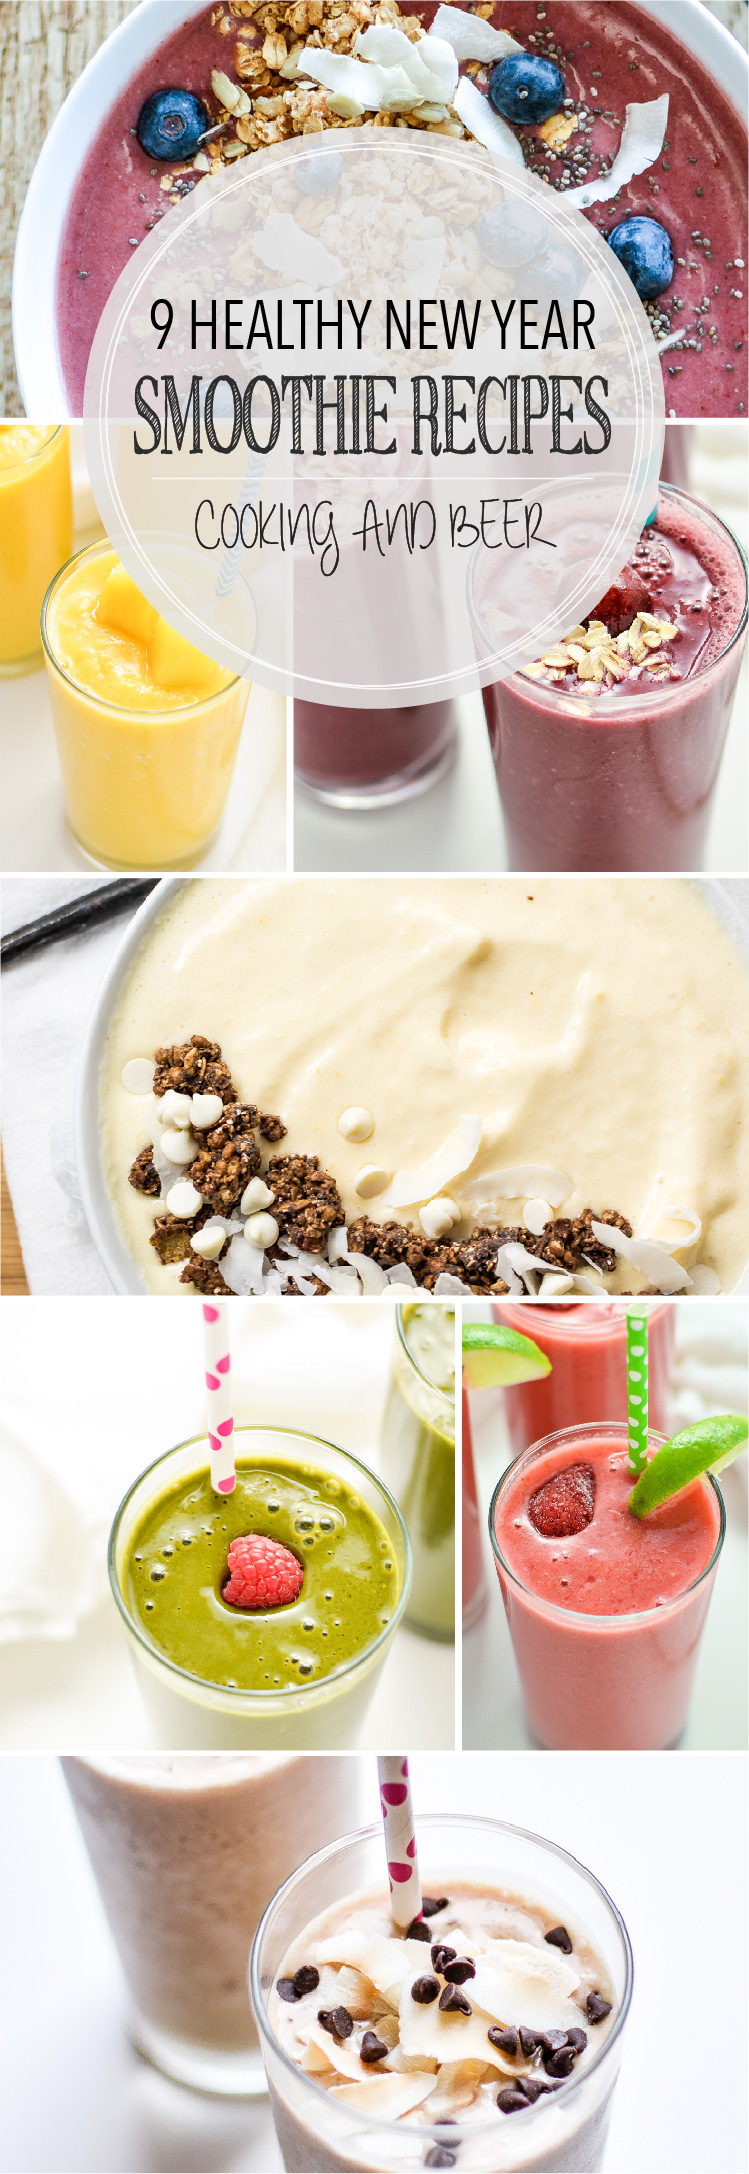 From fruity to earthy, and from sweet to not-so-sweet, here are 9 healthy smoothie recipes to kick start the new year! Add them to your morning routine!